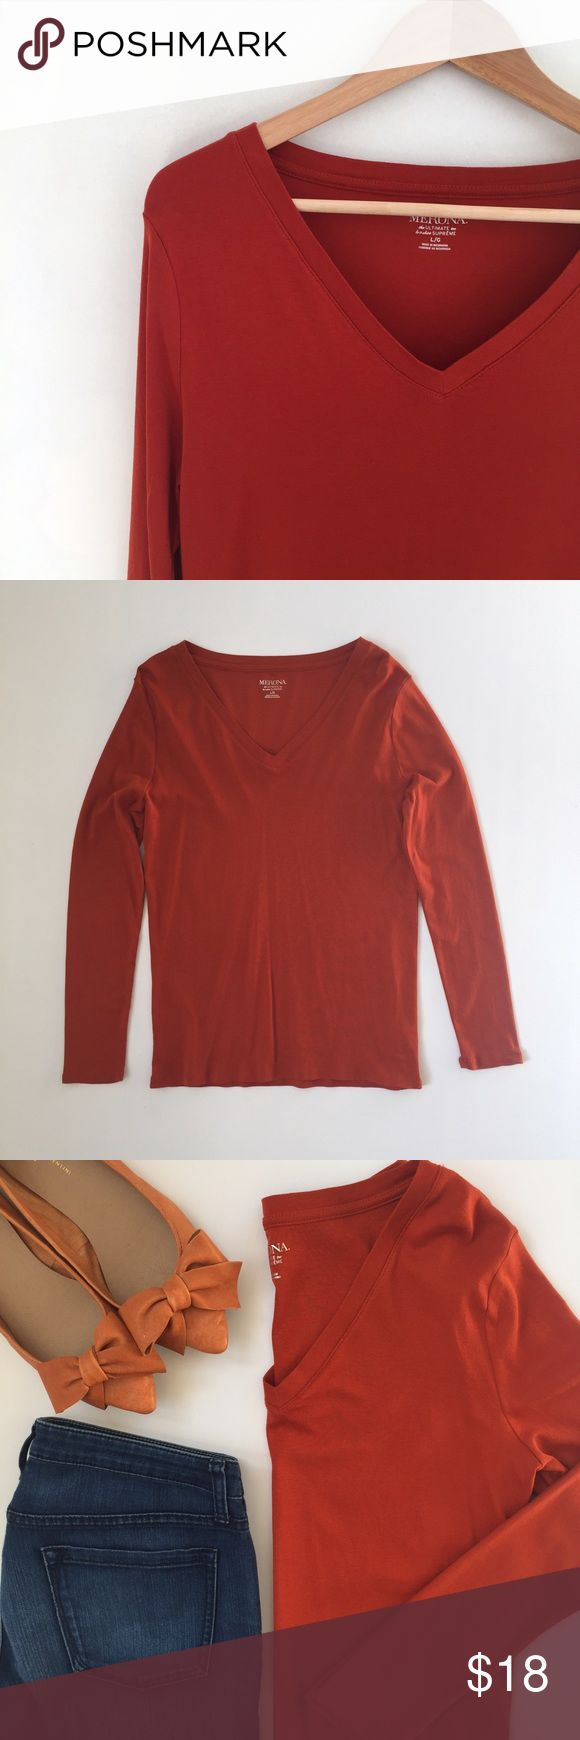 Long Sleeve Orange Tee Shirt Merona the ultimate tee, le t-shirt supreme. Shrink resistant, pre-washed for softness, low pill, slightly fitted. Gingersnap (burnt orange) color. New with tags. 100% cotton. Merona Tops Tees - Long Sleeve